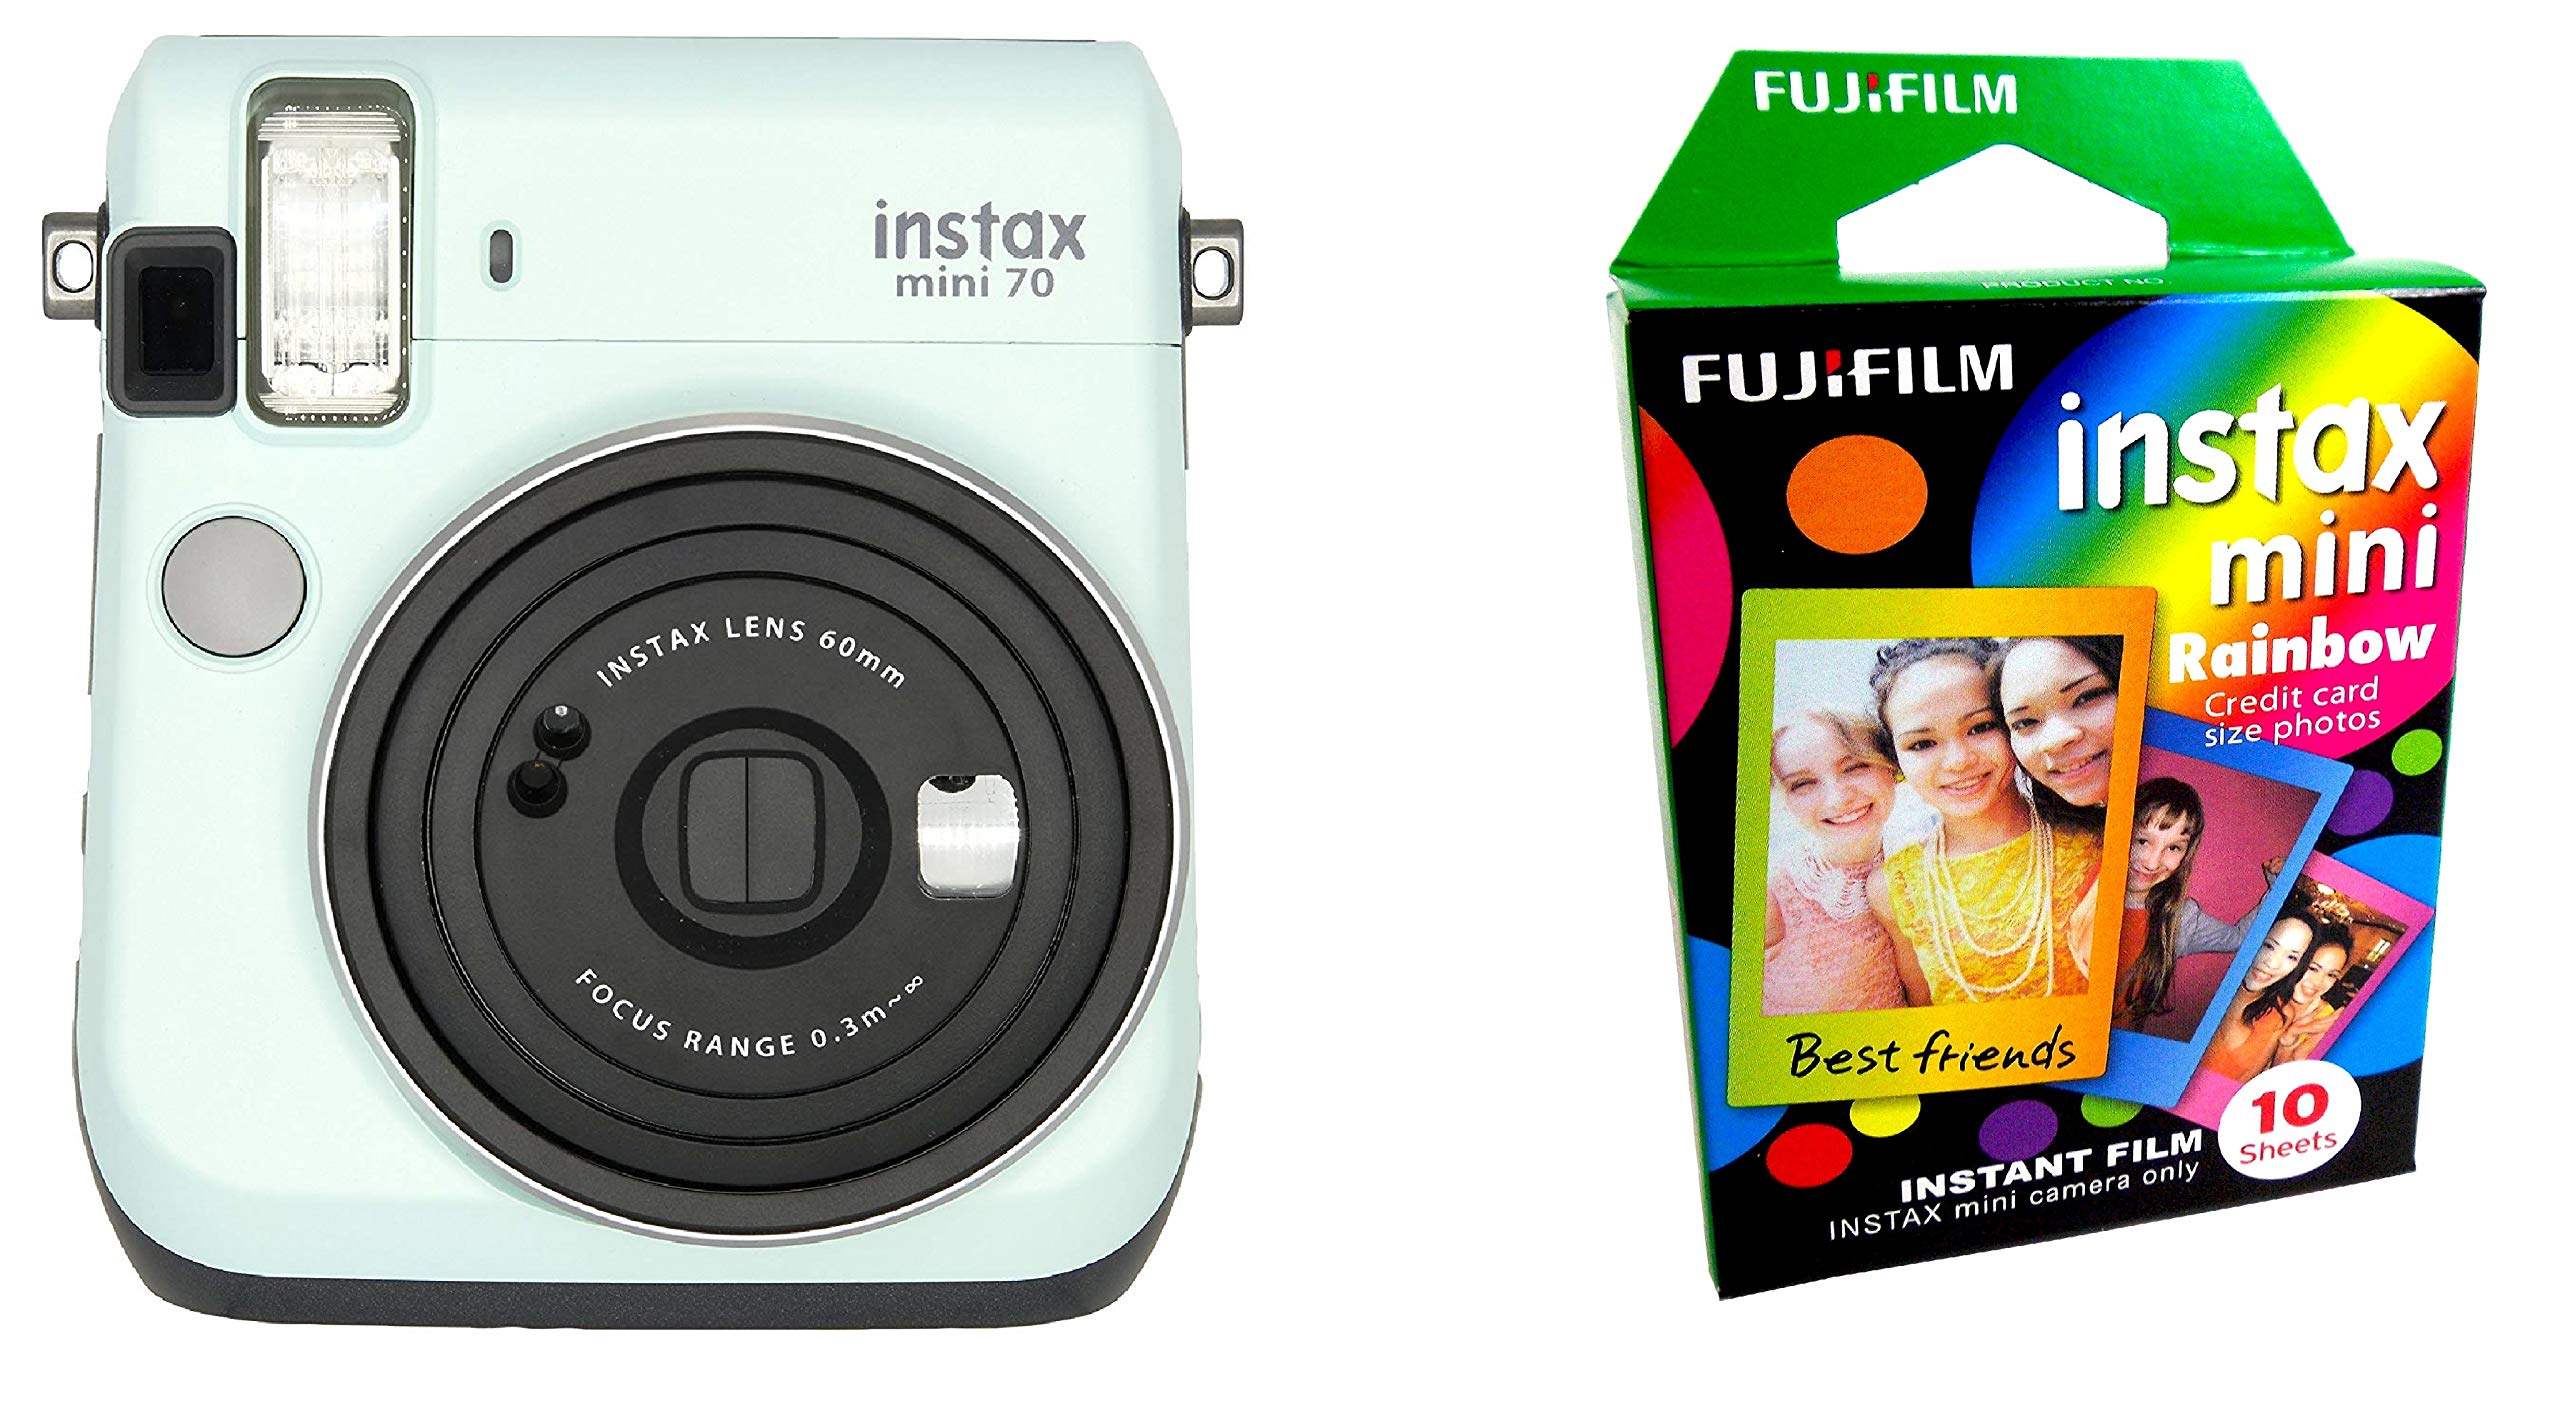 Fujifilm Instax Mini 70 - Instant Film Camera (ICY Mint) and Instax Mini Rainbow Film Value Pack - 10 Images by Fujifilm